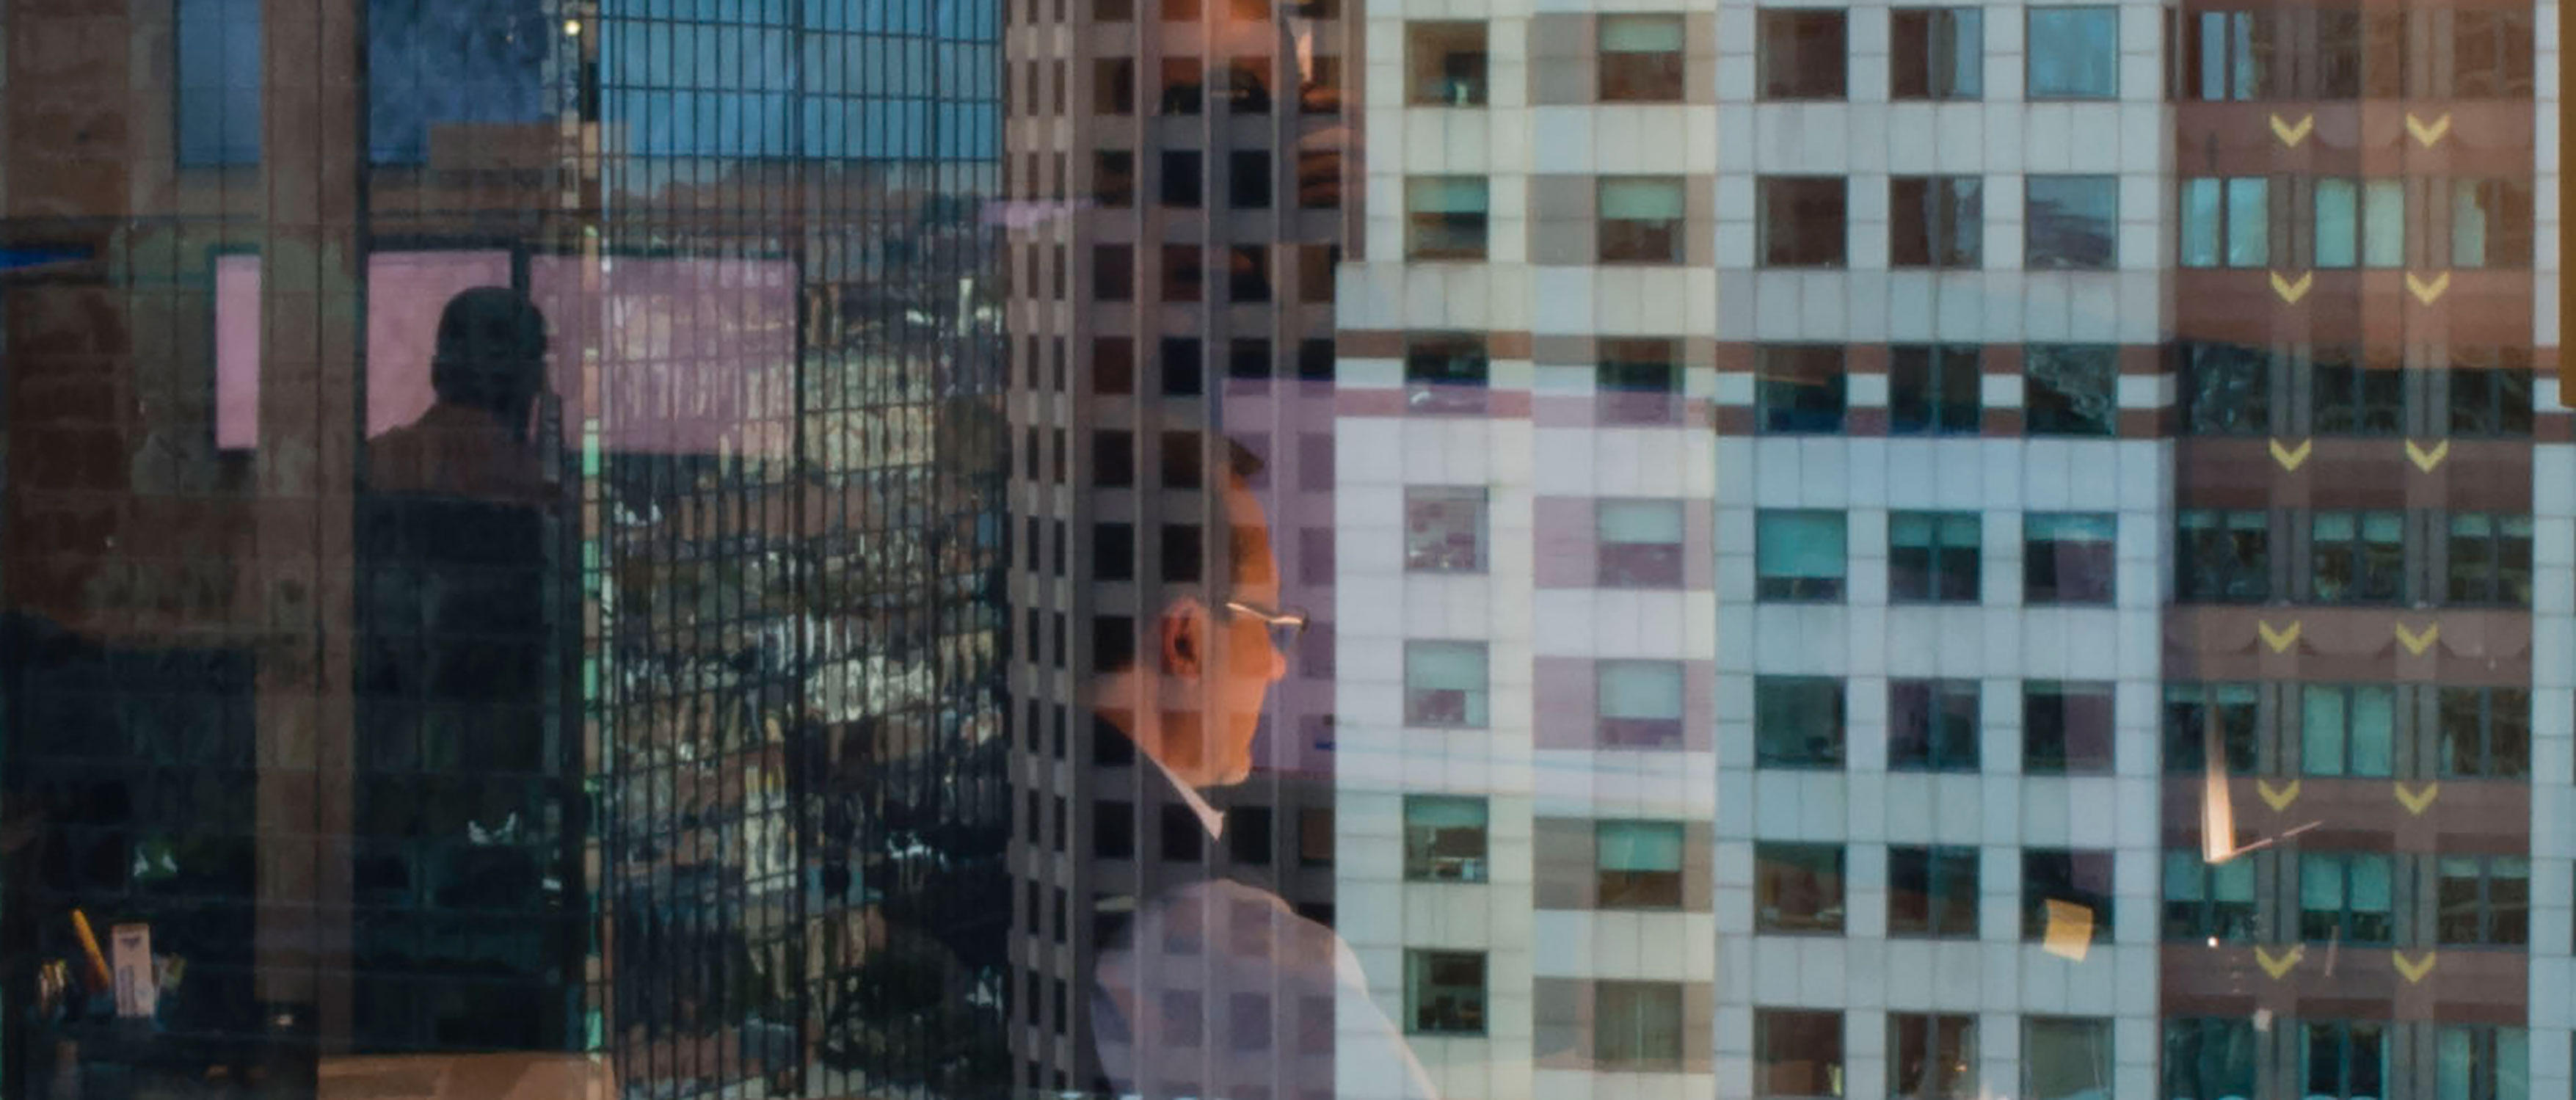 Cityscape with employee reflection in the window